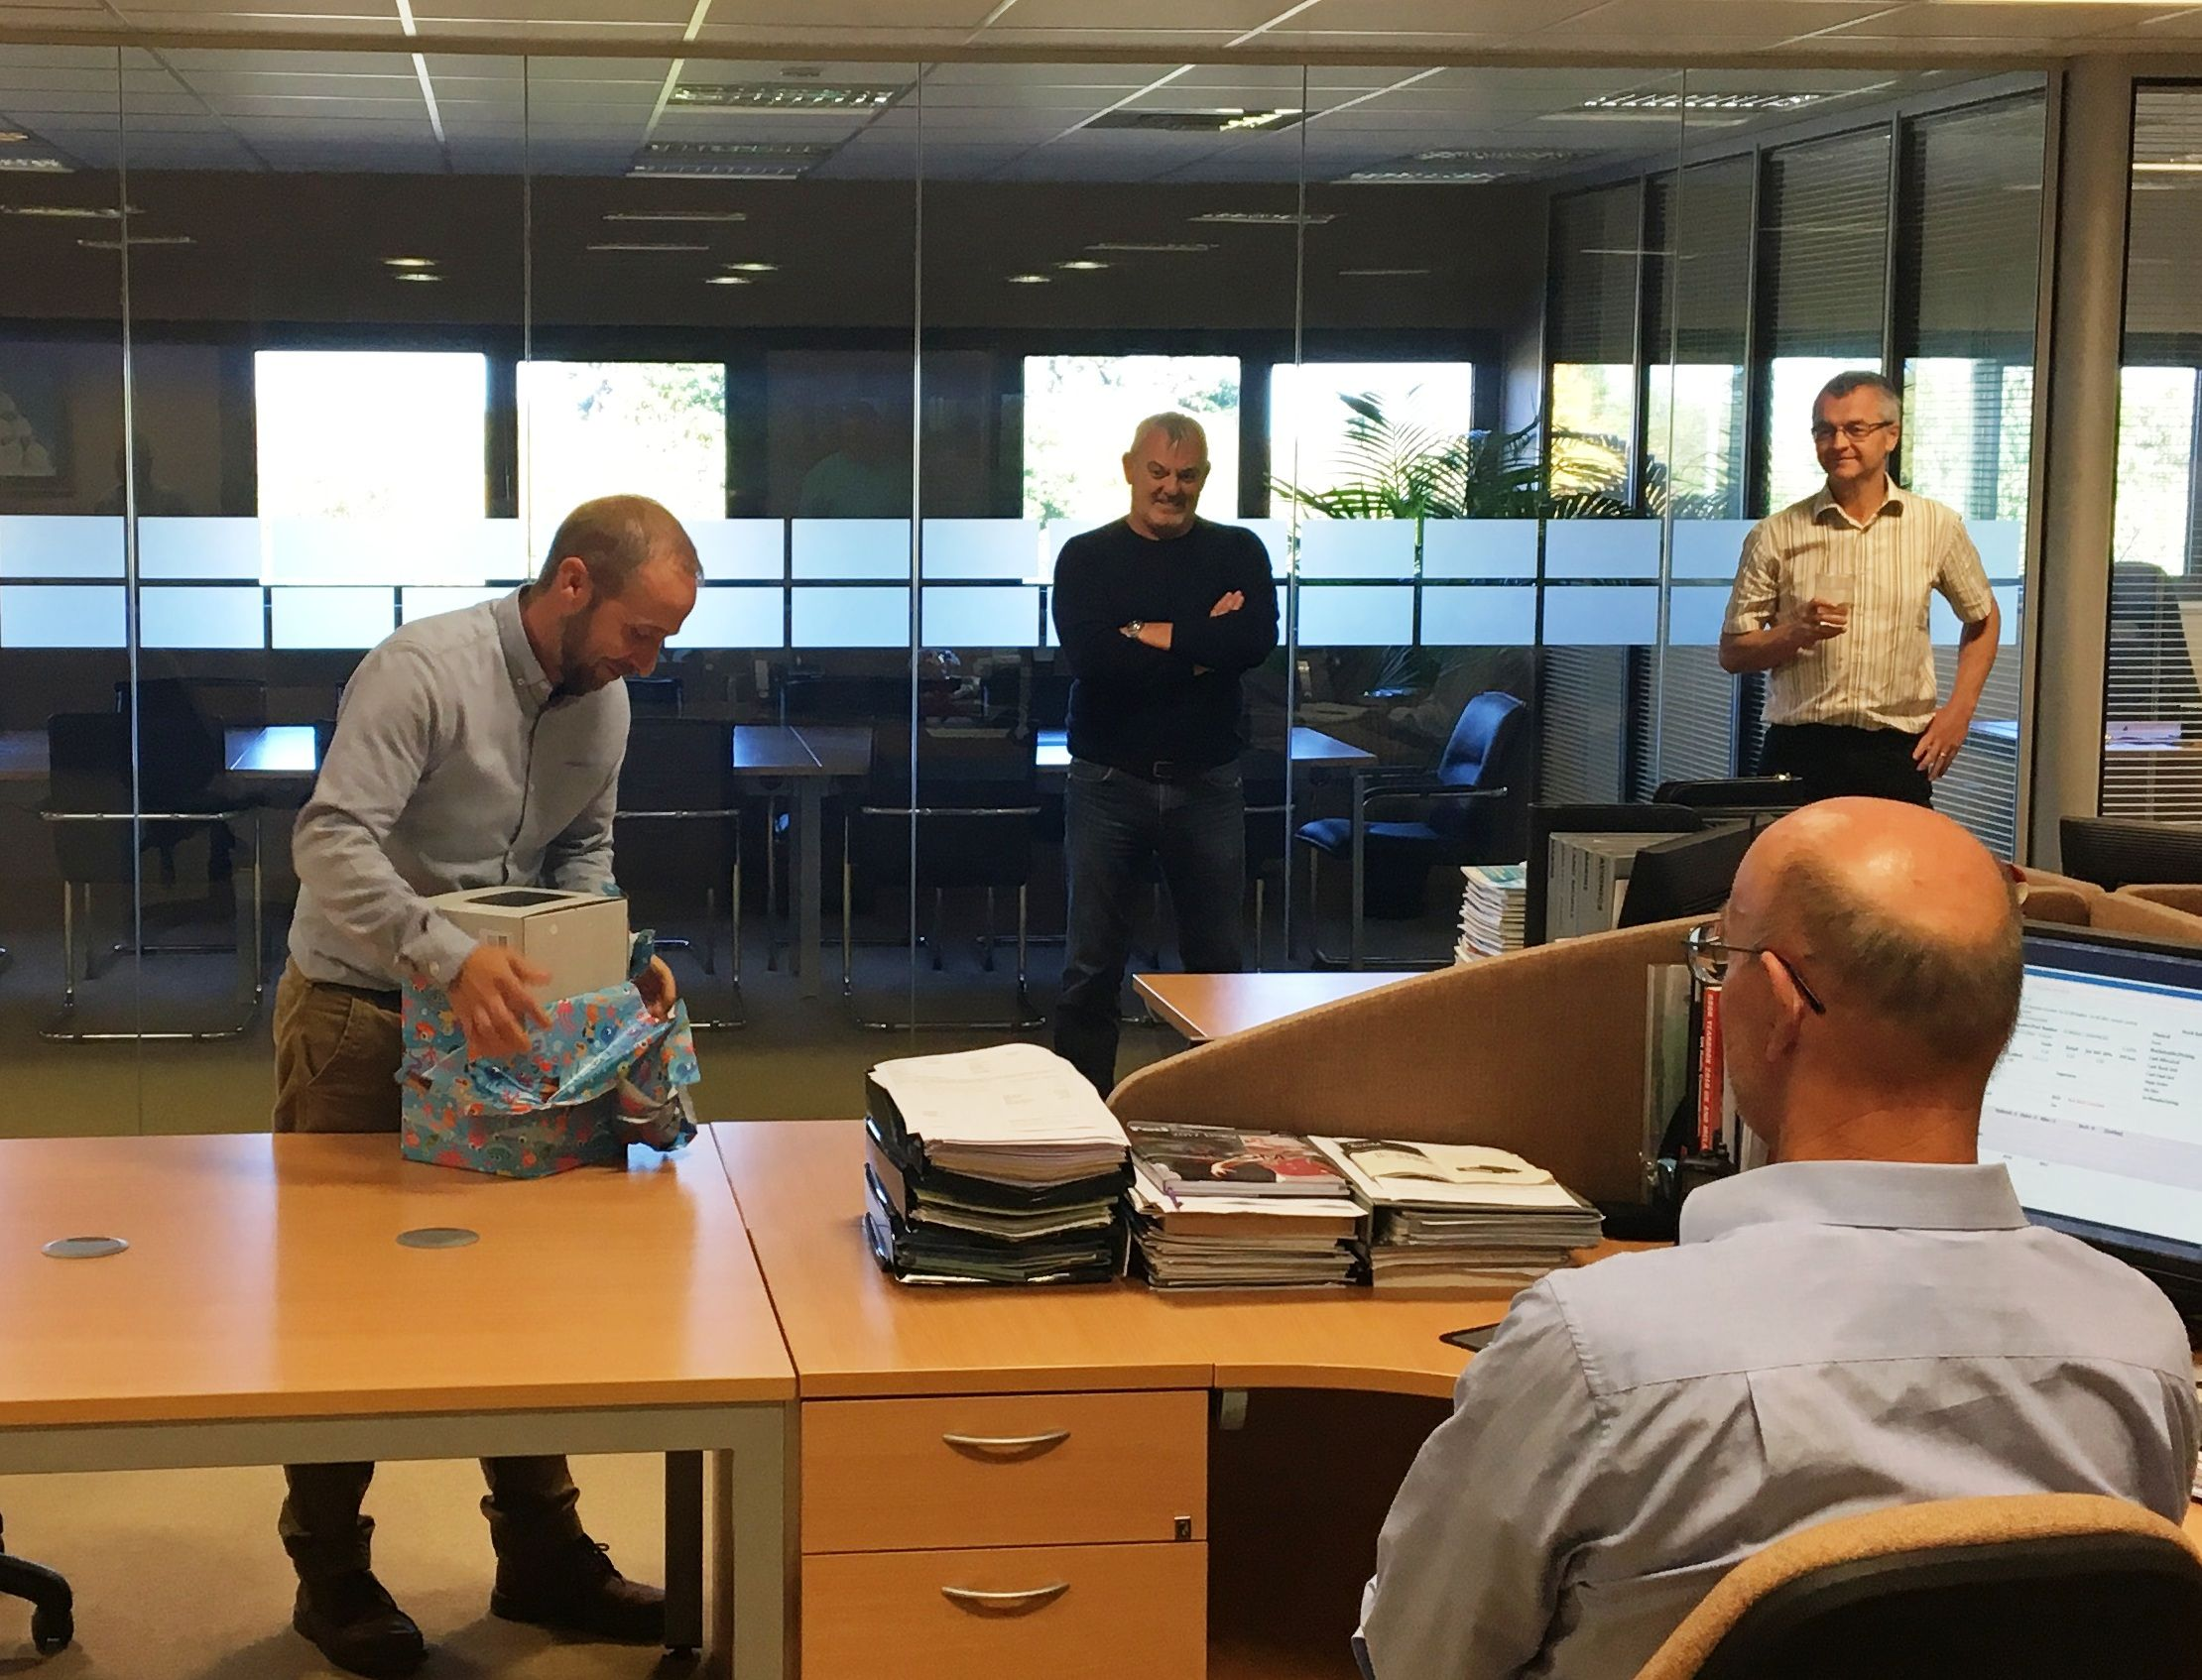 Not To Worry Virgil Has Just Celebrated 25 Years With Icom Uk And Everyone Came Upstairs Show Their Reciation A Top Bloke Very Knowledgeable